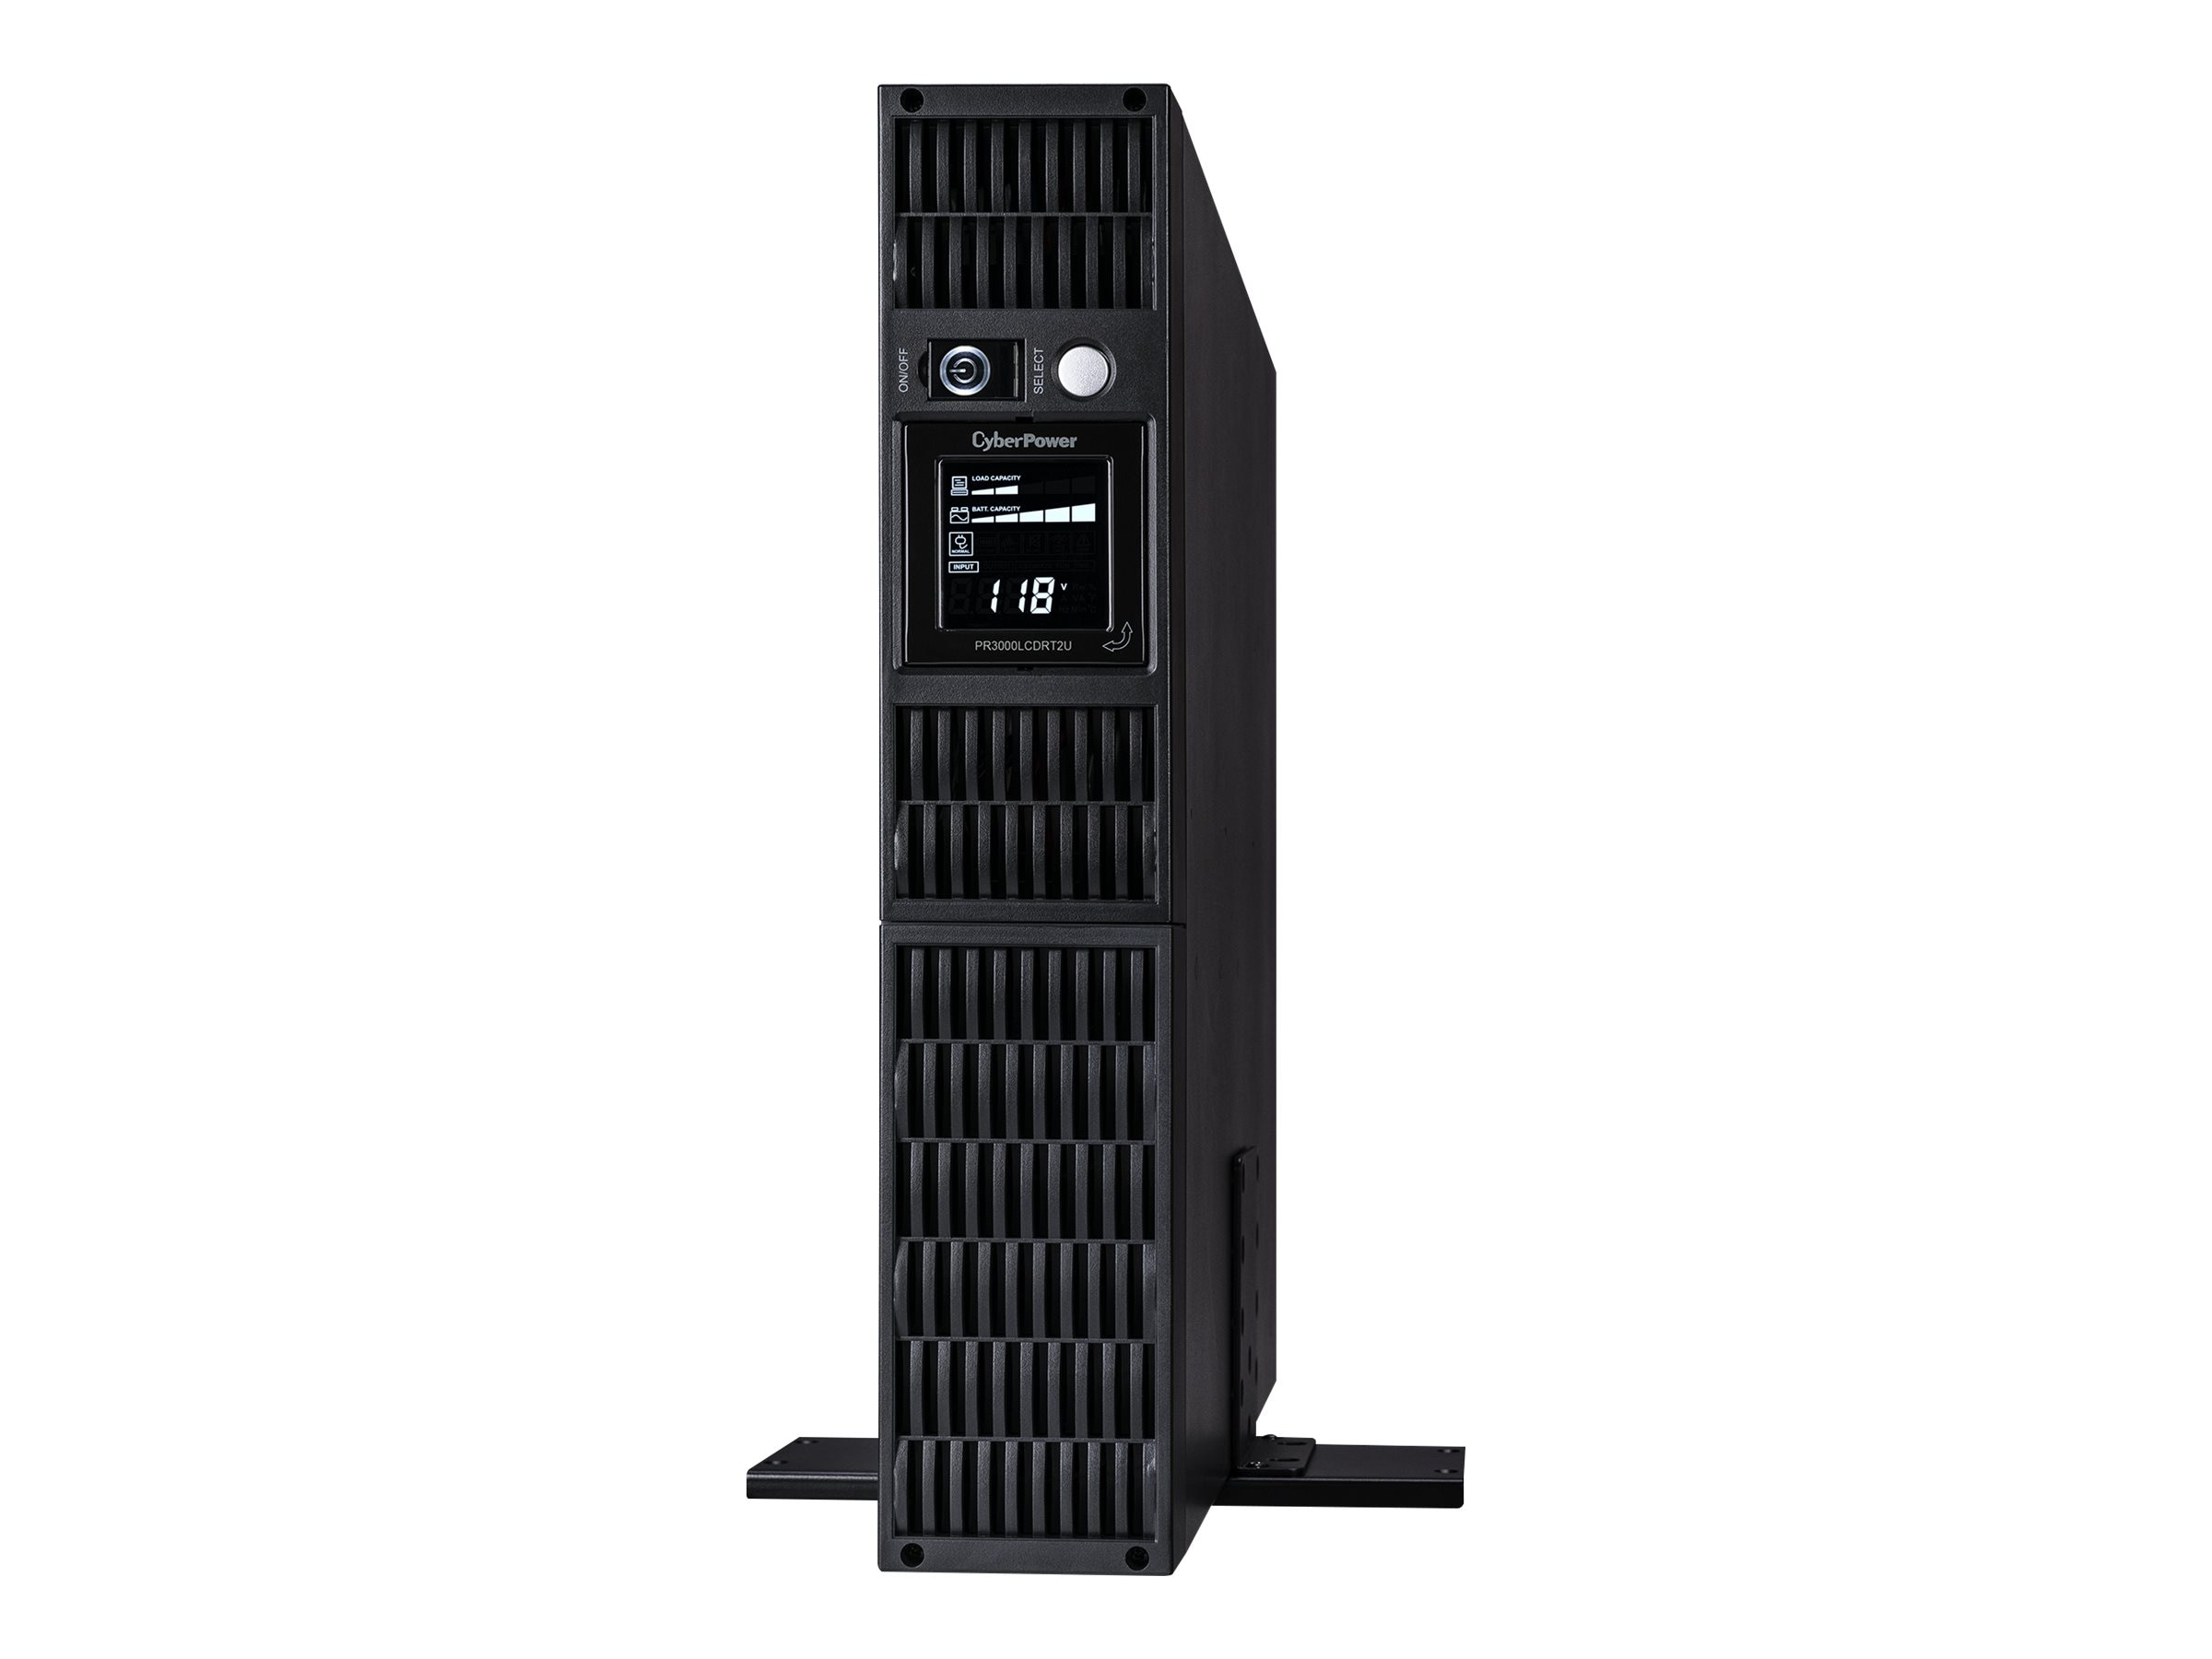 CyberPower 3000VA 2250W Smart App Sinewave LCD UPS 2U RM Tower AVR, 9 Outlets, PR3000LCDRT2U, 9414509, Battery Backup/UPS